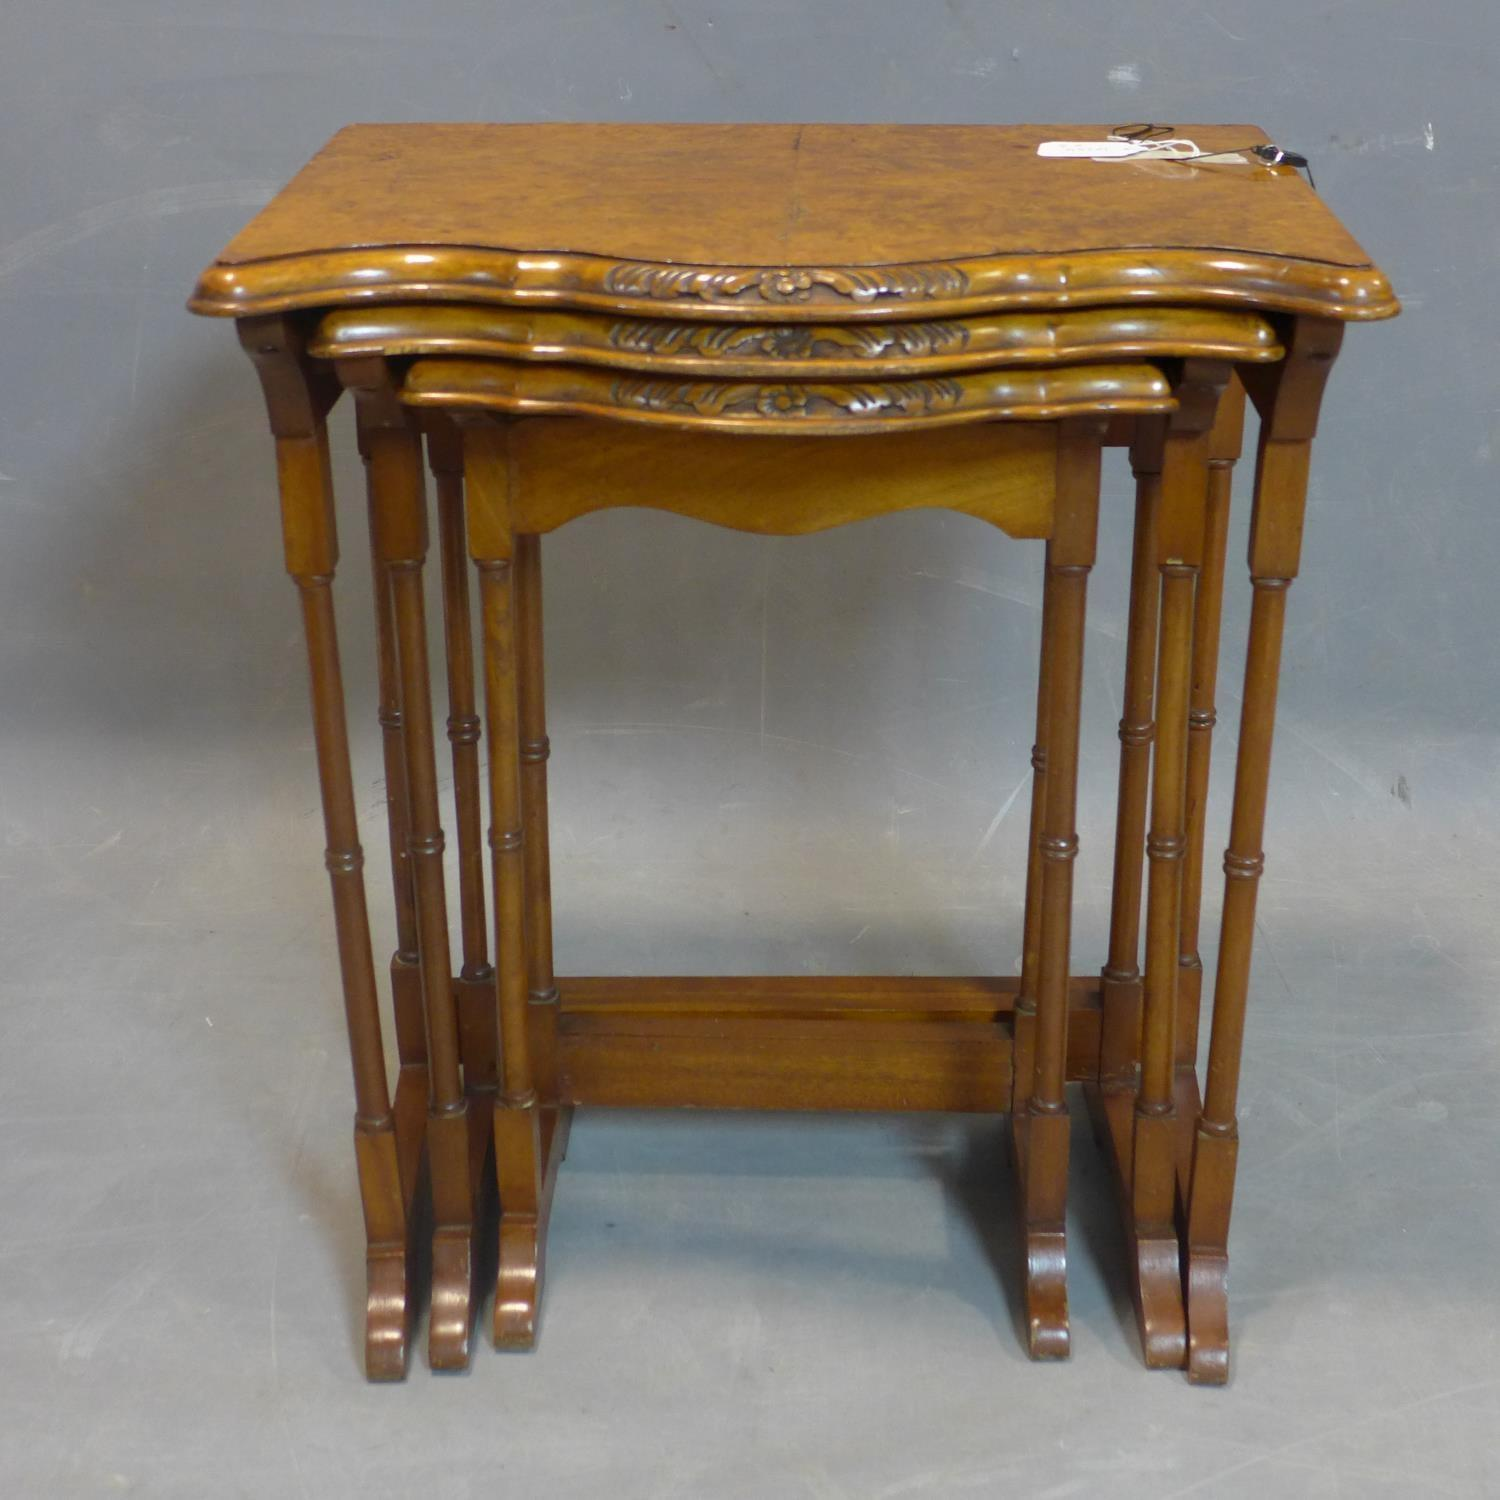 A walnut nest of three tables, with quarter veneered tops with serpentine fronts, raised on - Image 2 of 2